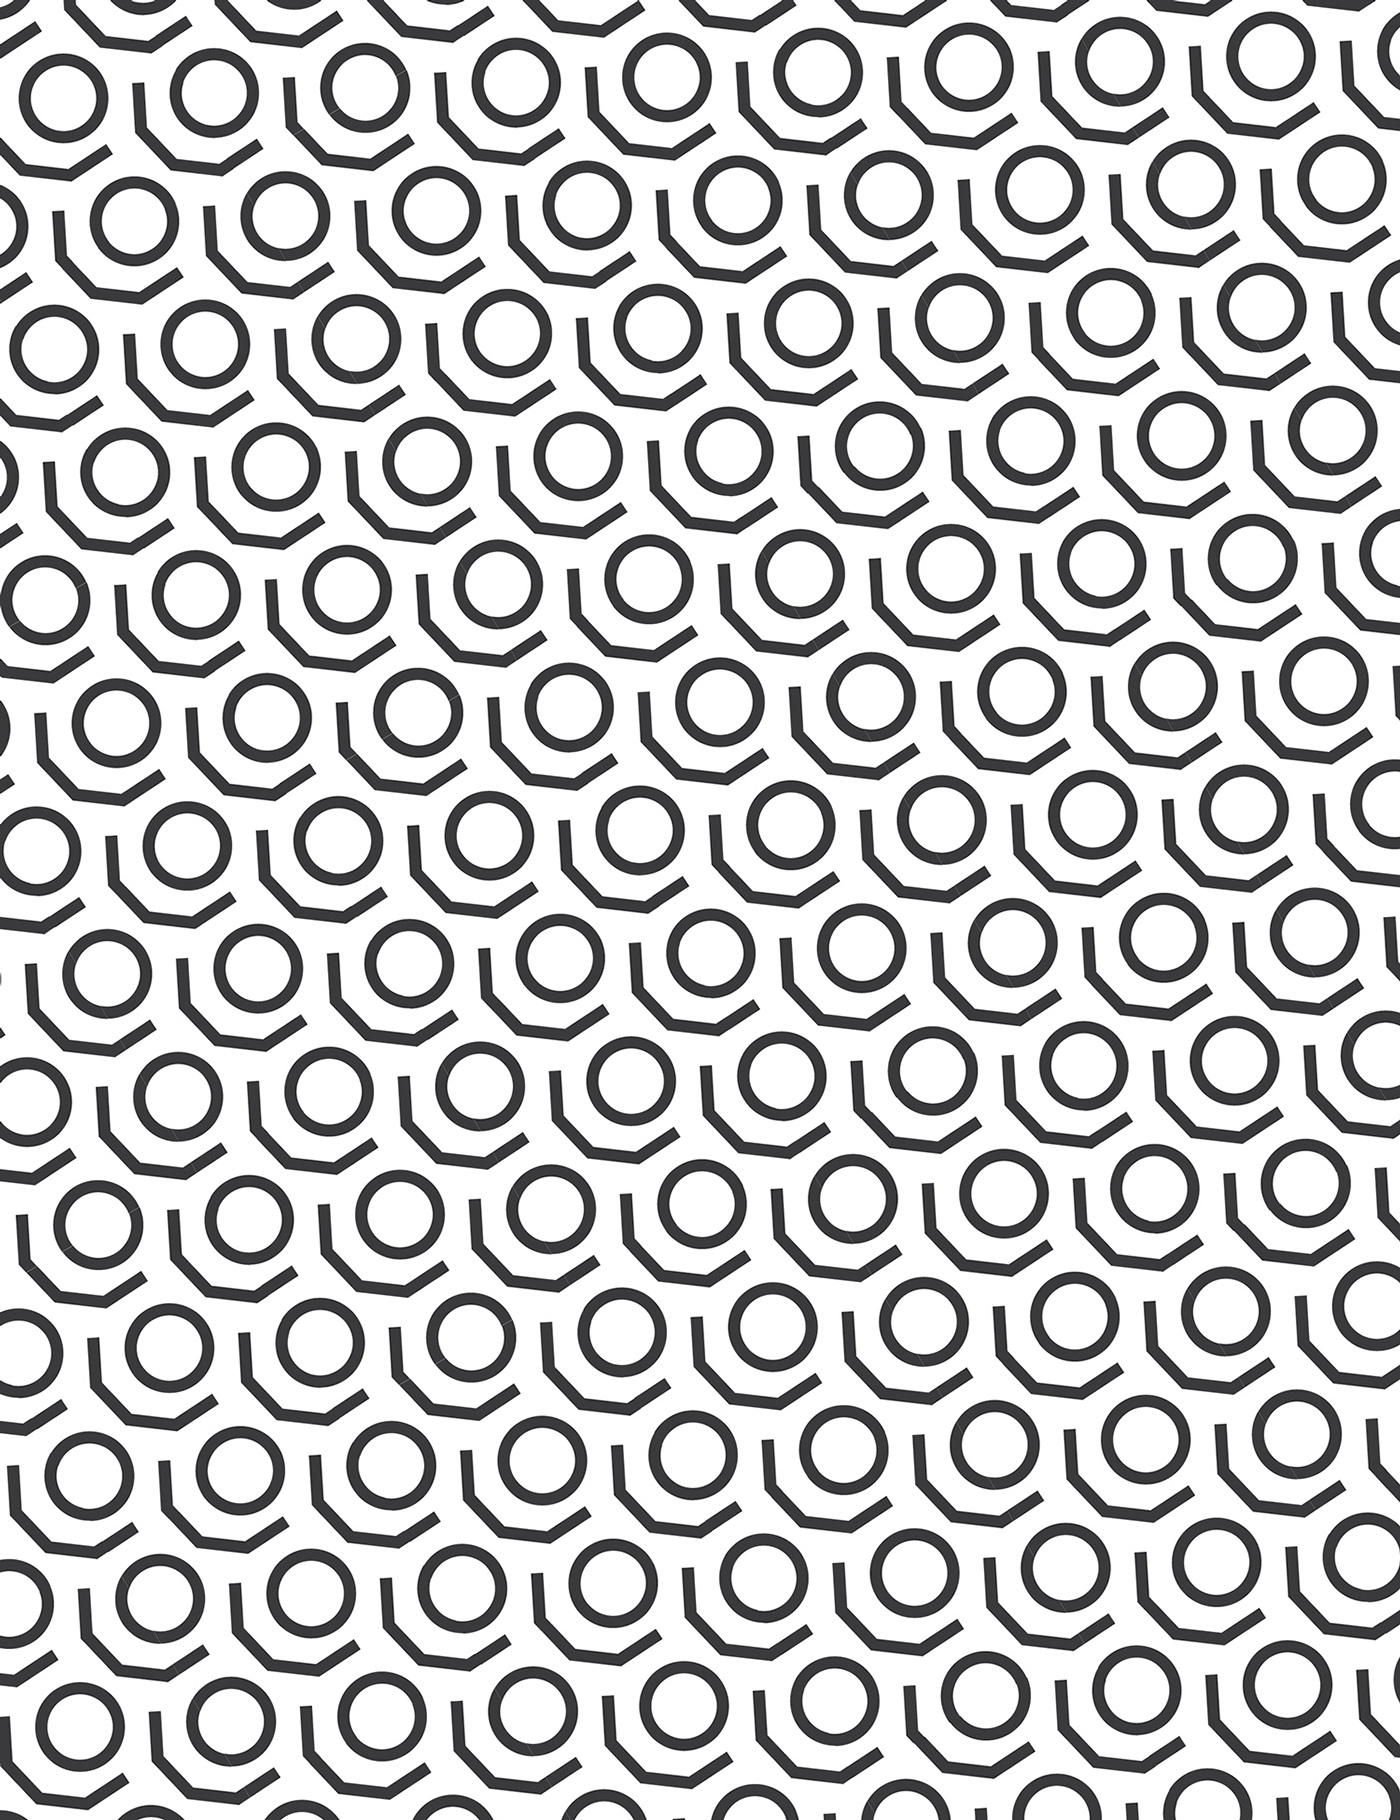 Line Art Typography : Free line art patterns vector titanui